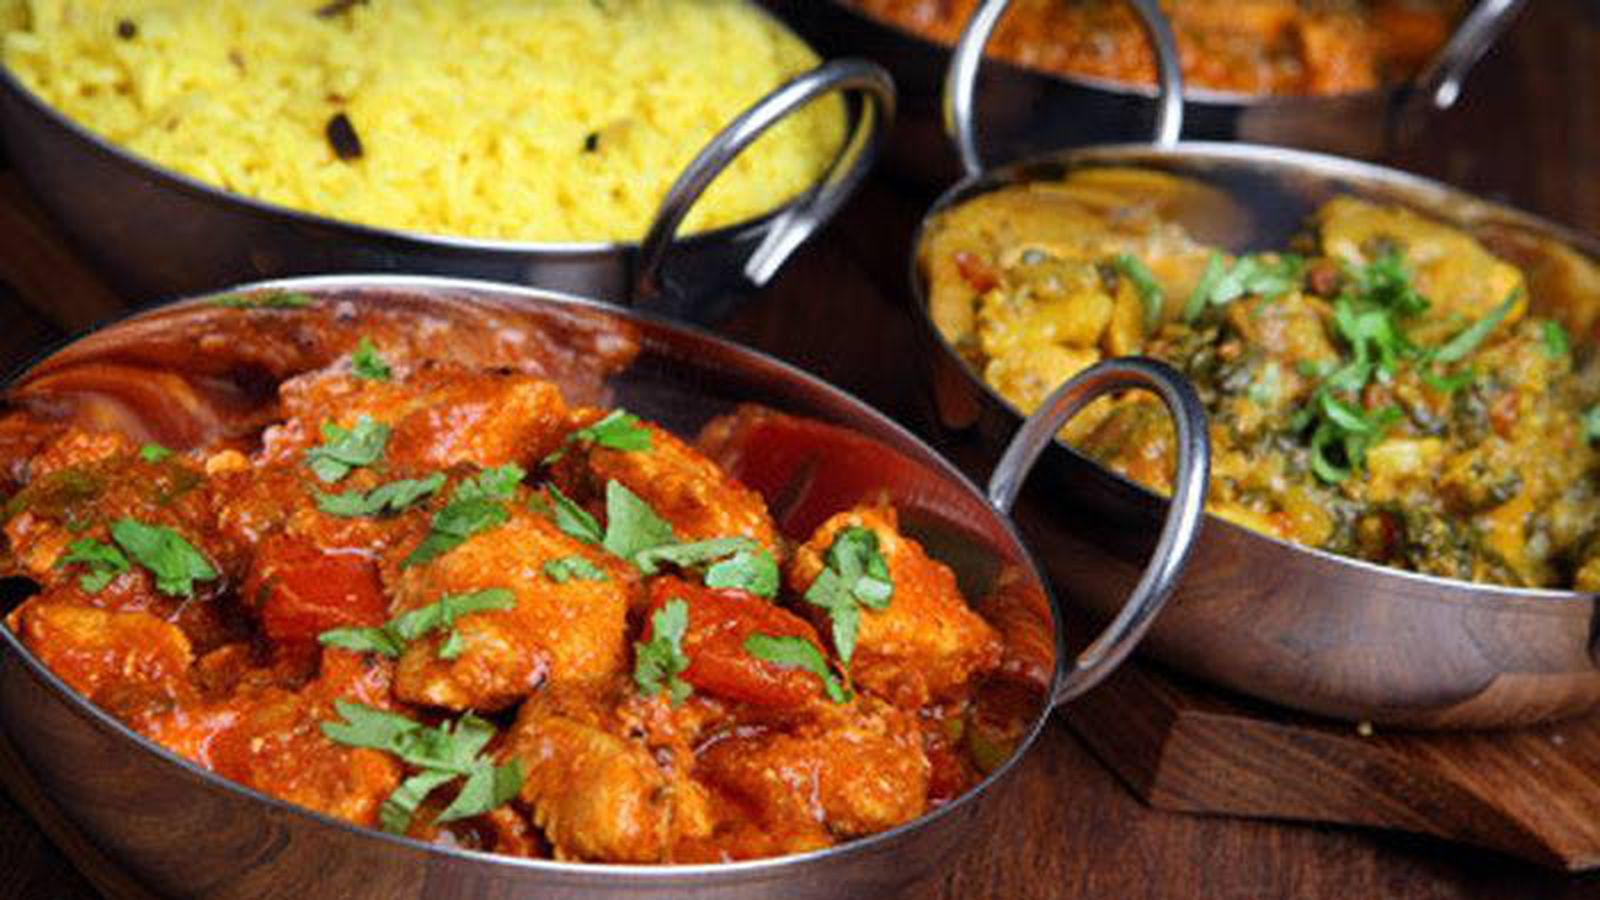 Cuisine Spicy 12 Great Indian Restaurants In Chicago That Prove Variety